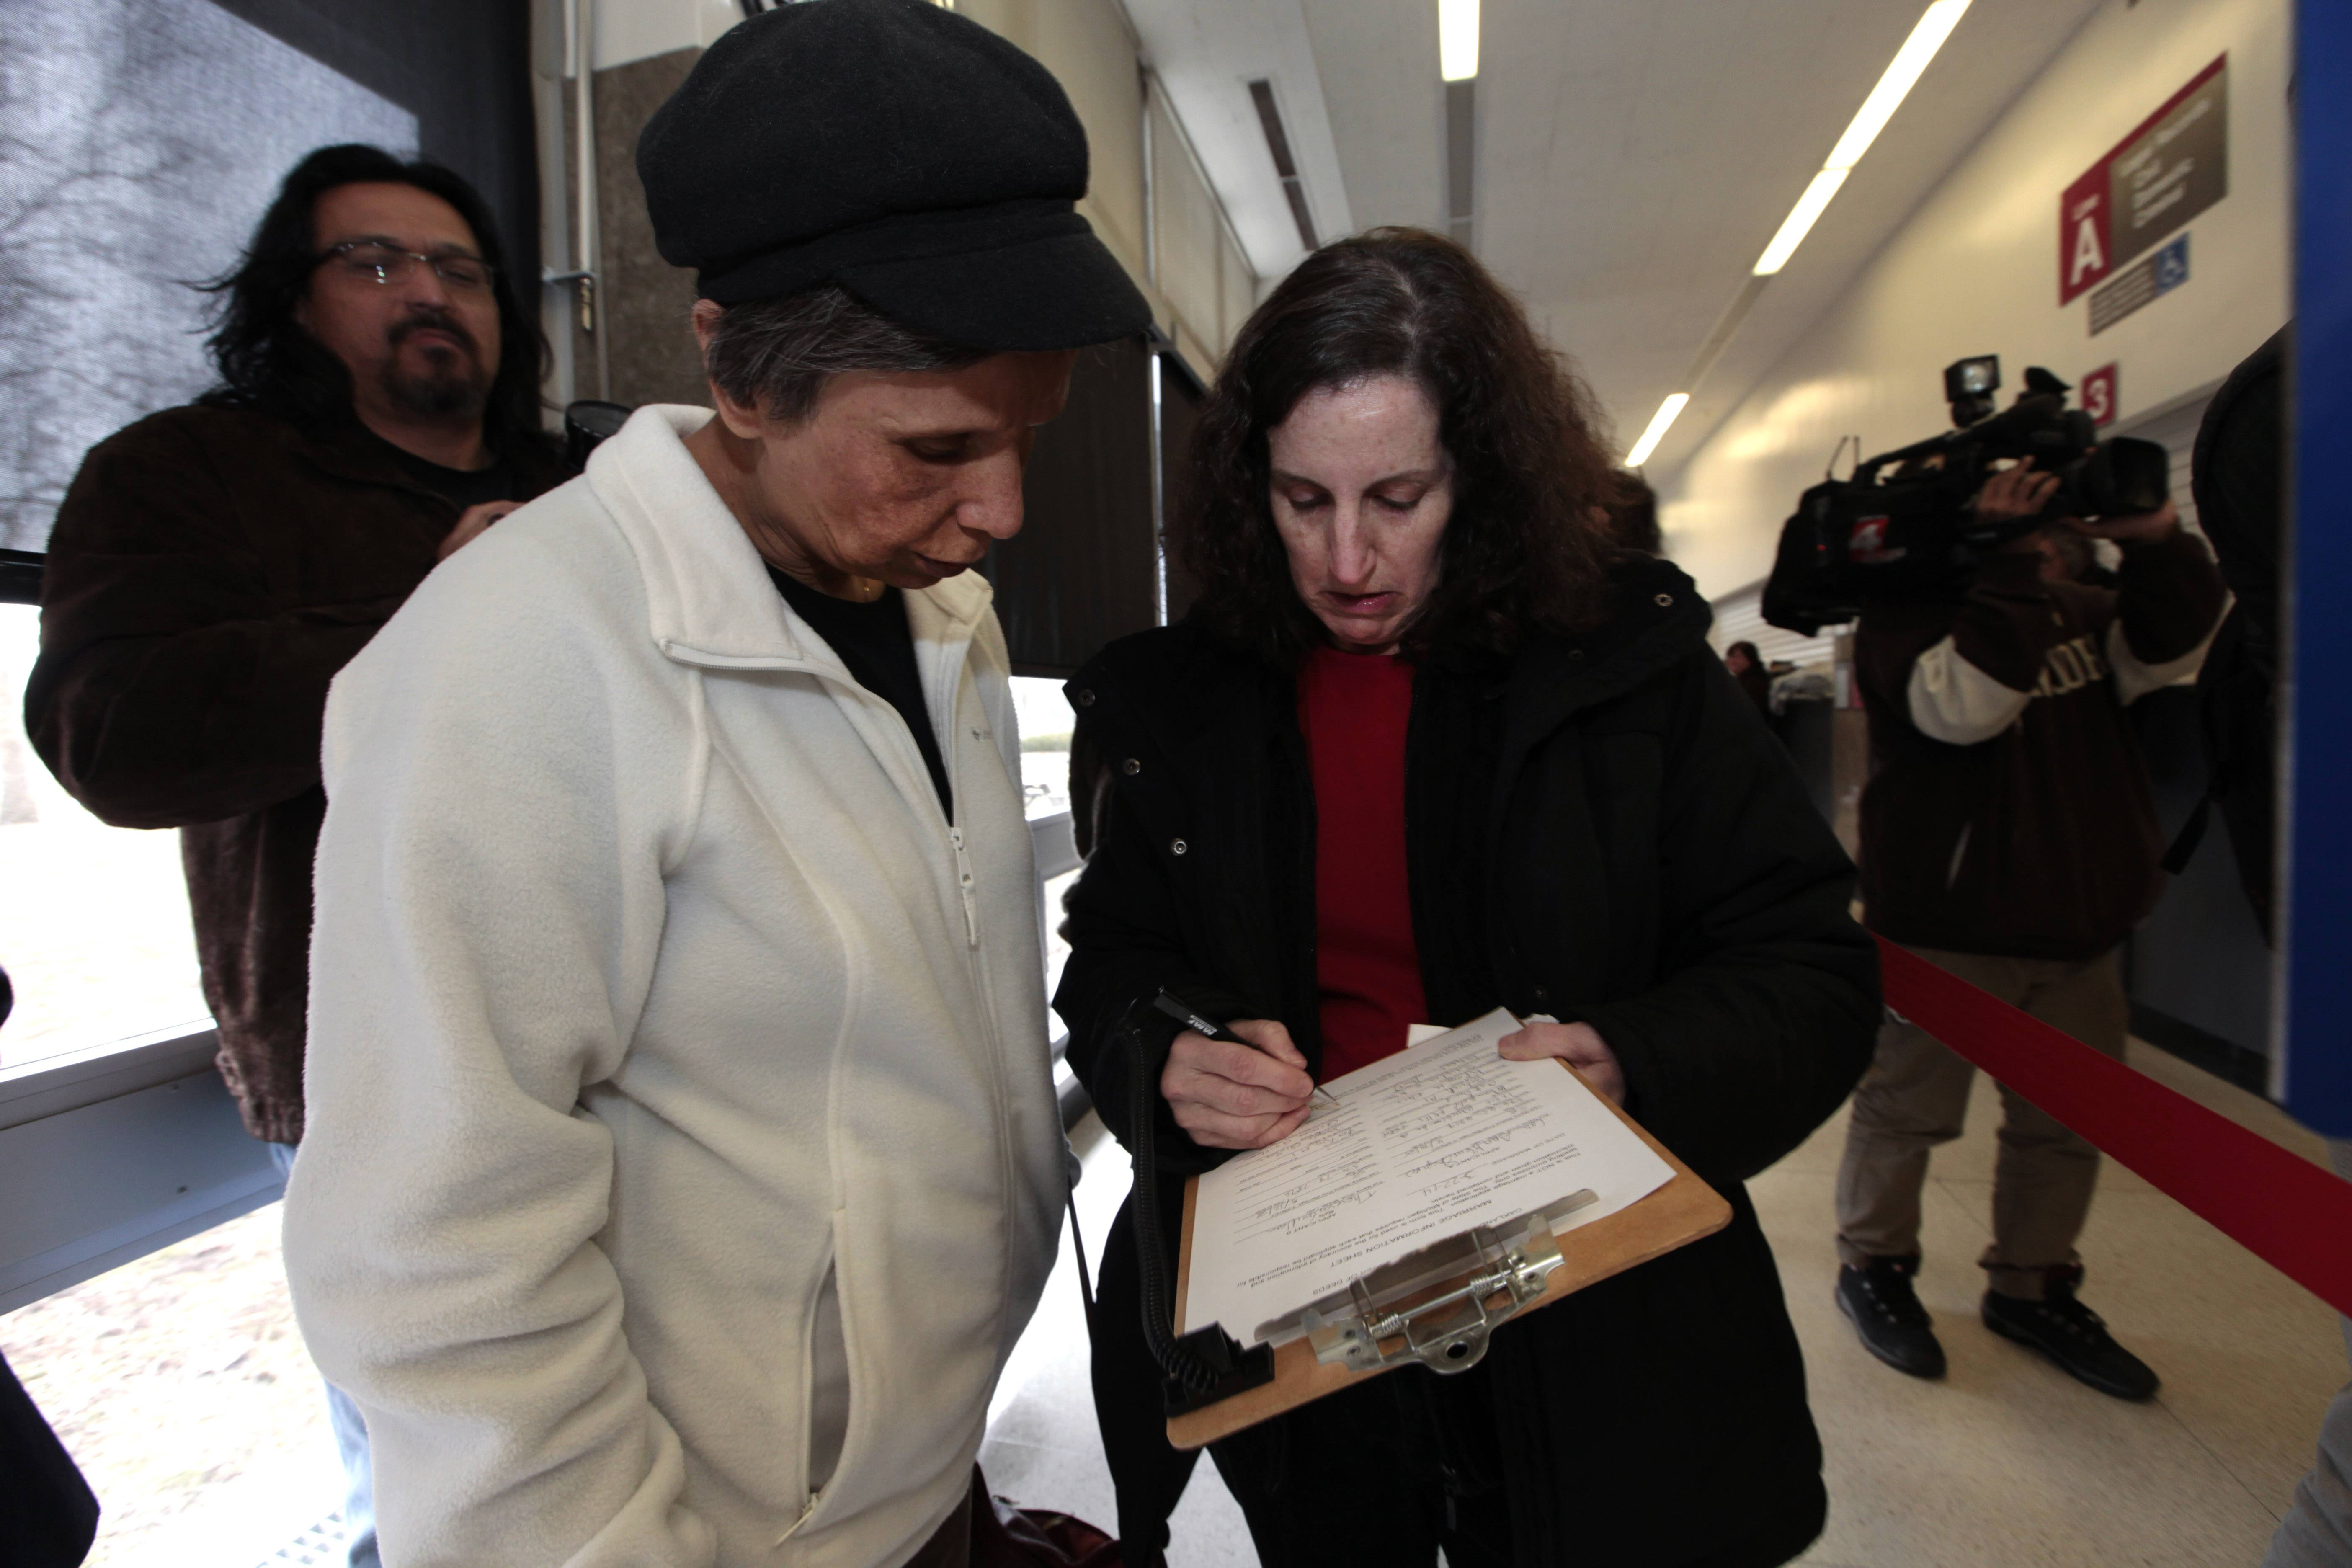 Theresa Guillen, left, and Lori Klein Shapiro, fill out information for a marriage license Saturday at the Oakland County Clerks office in Pontiac, Mich.